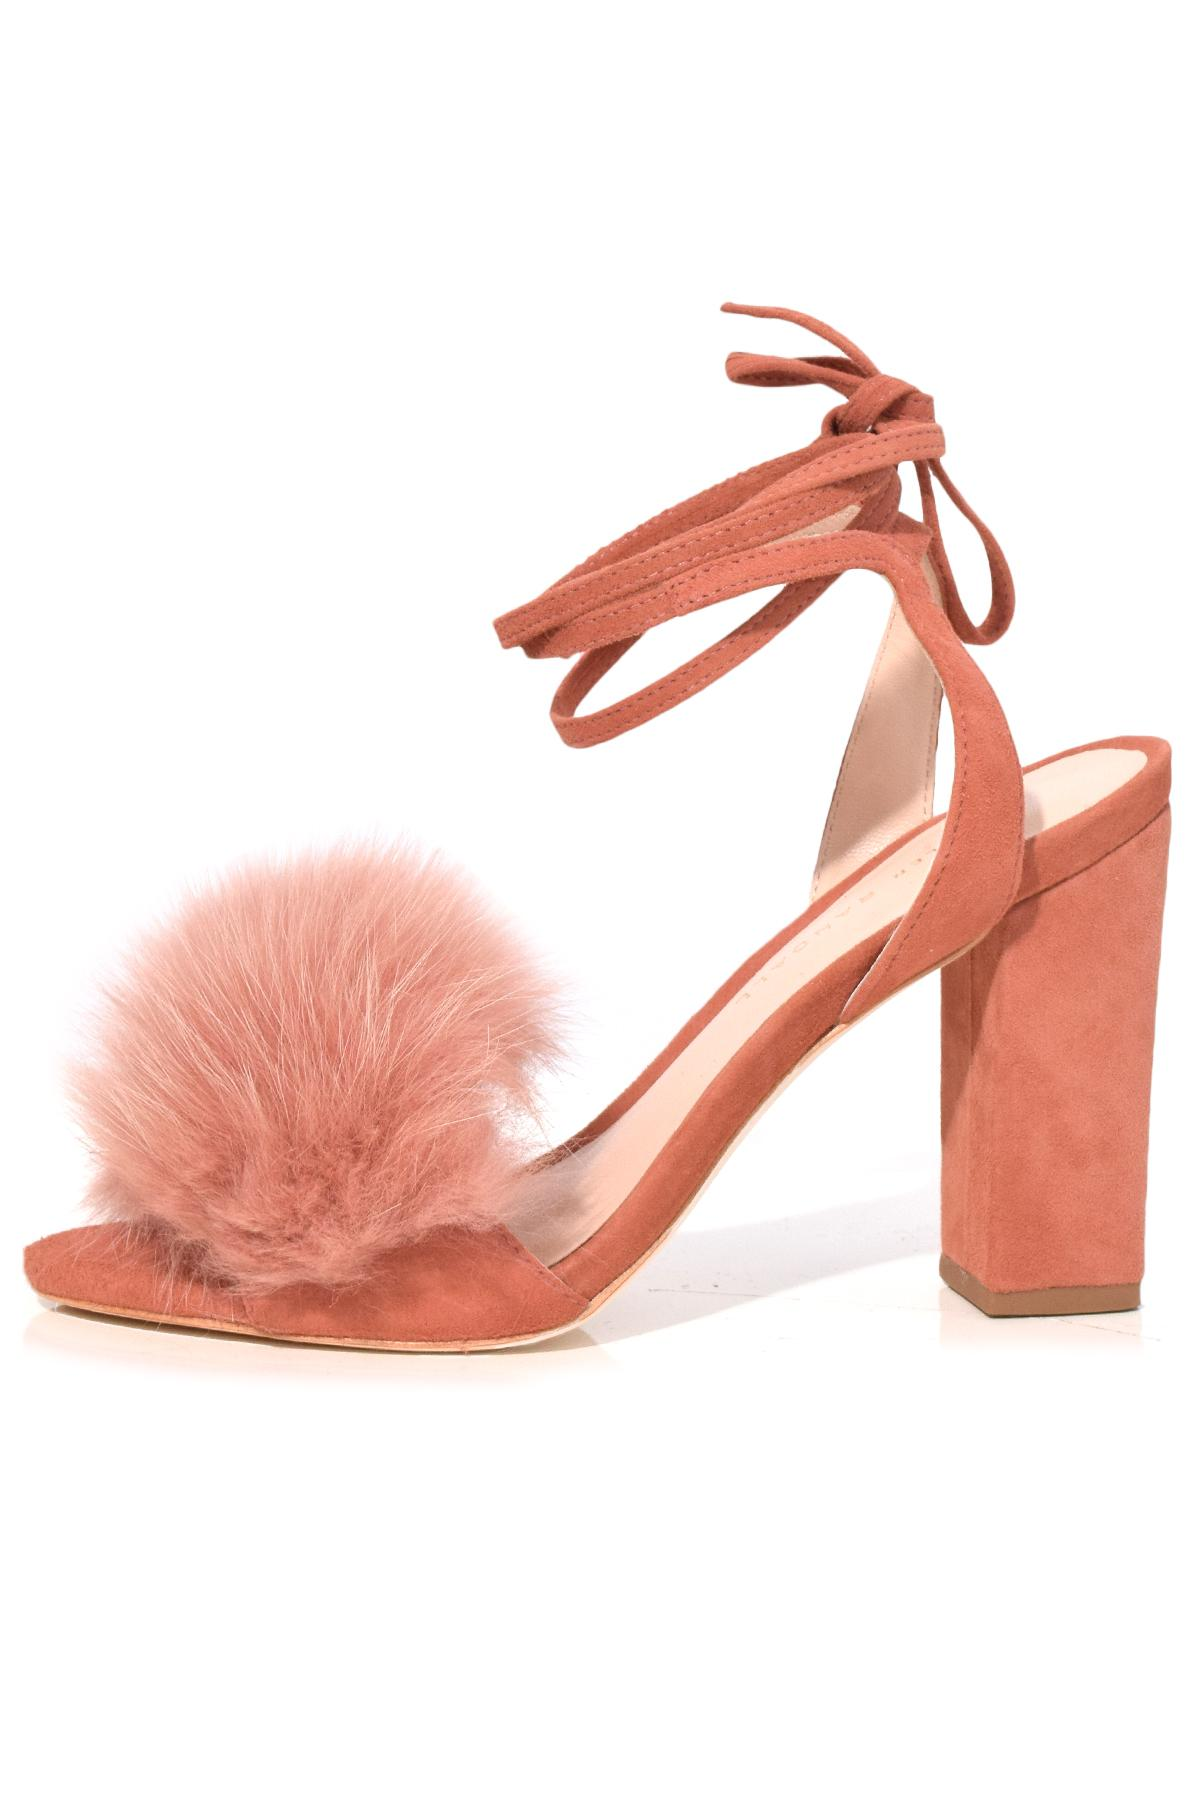 Lyst Simon Miller Nicolette Sandal In Dusty Rose In Pink